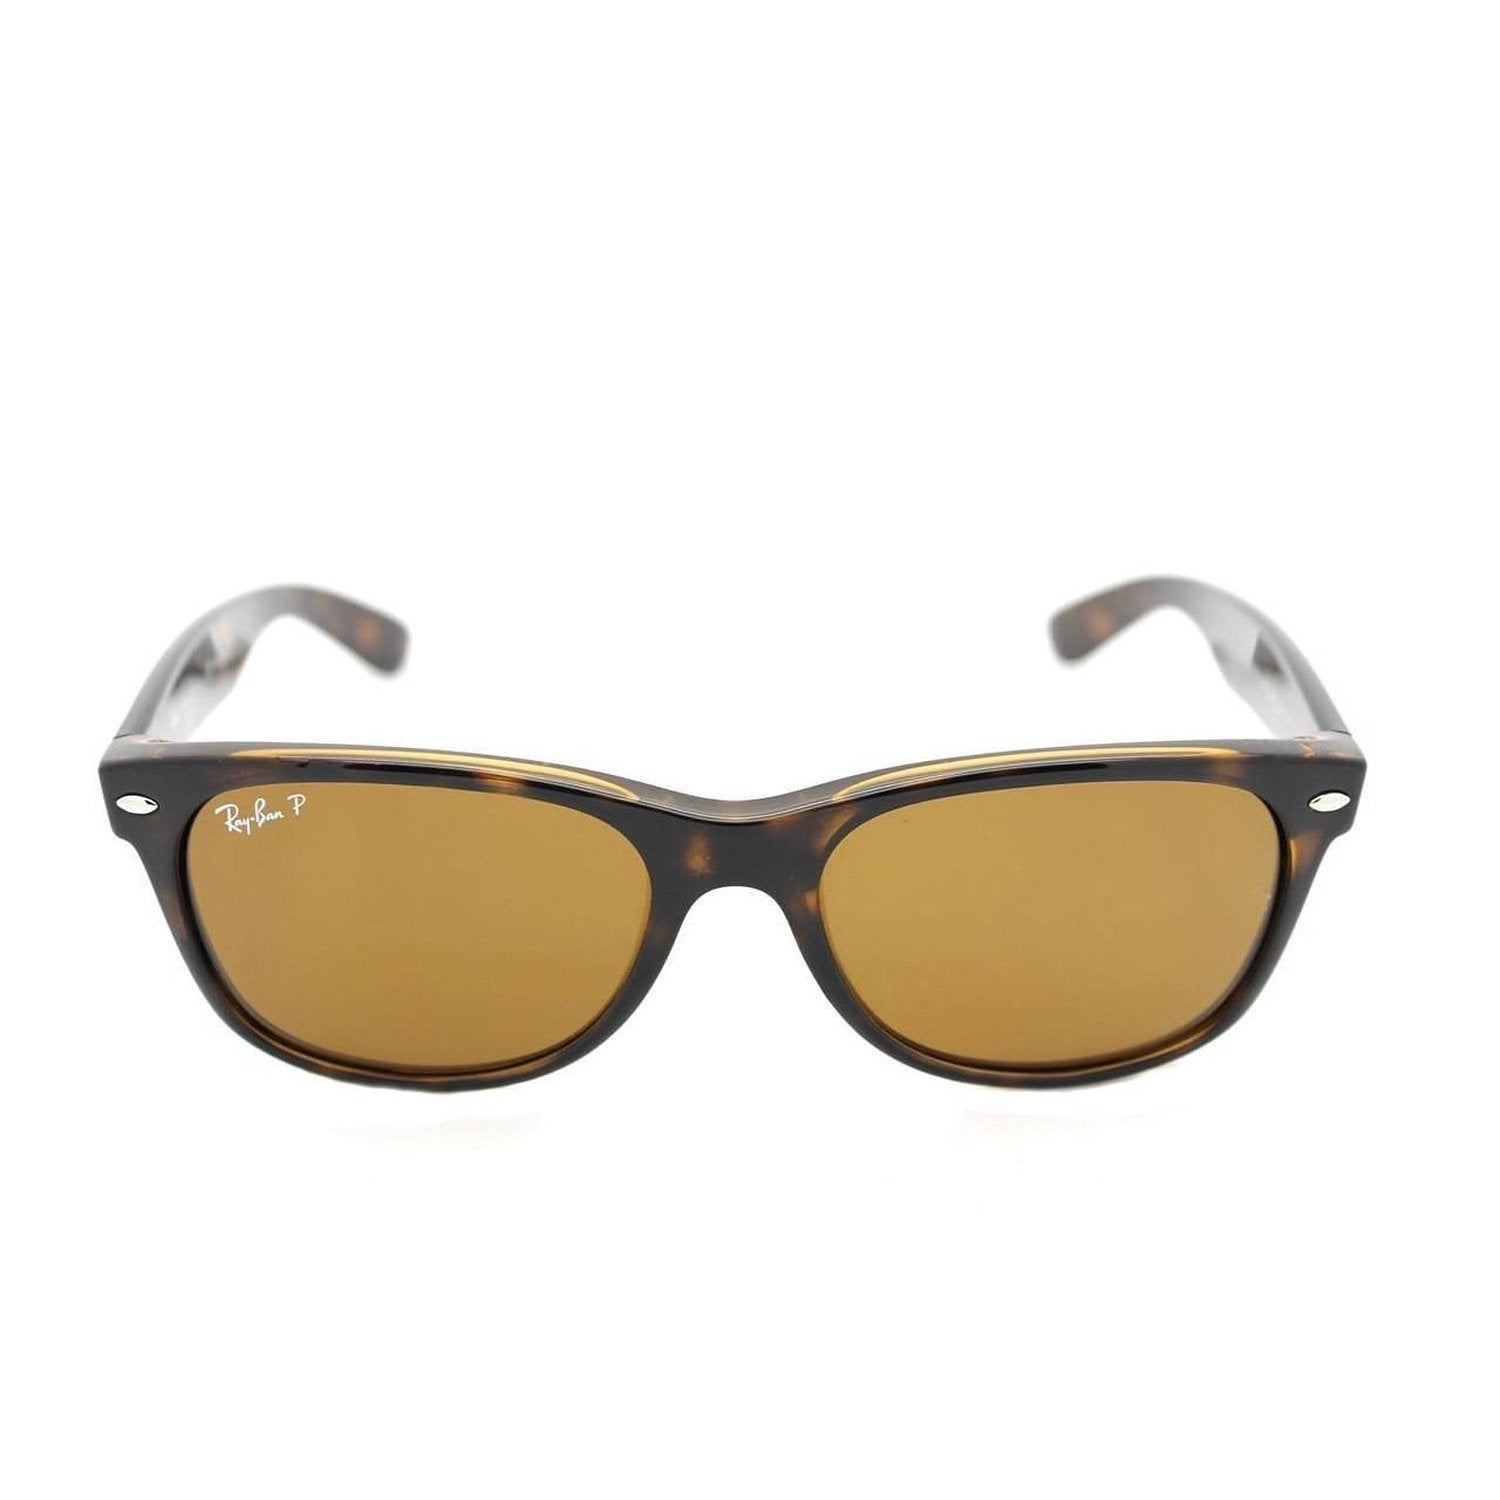 f9795c5de2d72 Shop Ray-Ban RB2132 902 57 Unisex New Wayfarer Classic Tortoise Frame  Polarized Brown 55mm Lens Sunglasses - Free Shipping Today - Overstock -  11118555